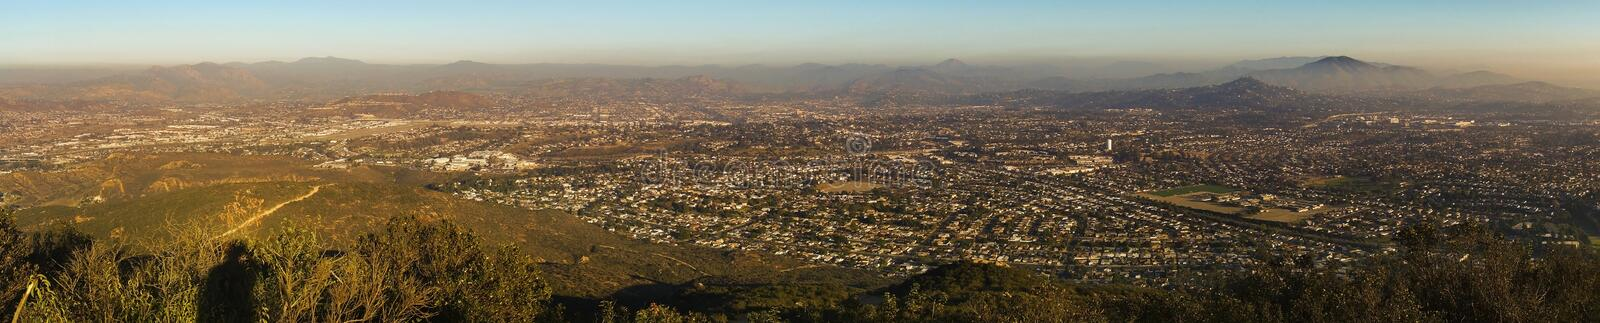 San Diego County Panoramic Landscape from Mount Cowles Mission Trails. Wide Panoramic Landscape of Smog Covered San Diego County and Distant Mexico Baja royalty free stock photo